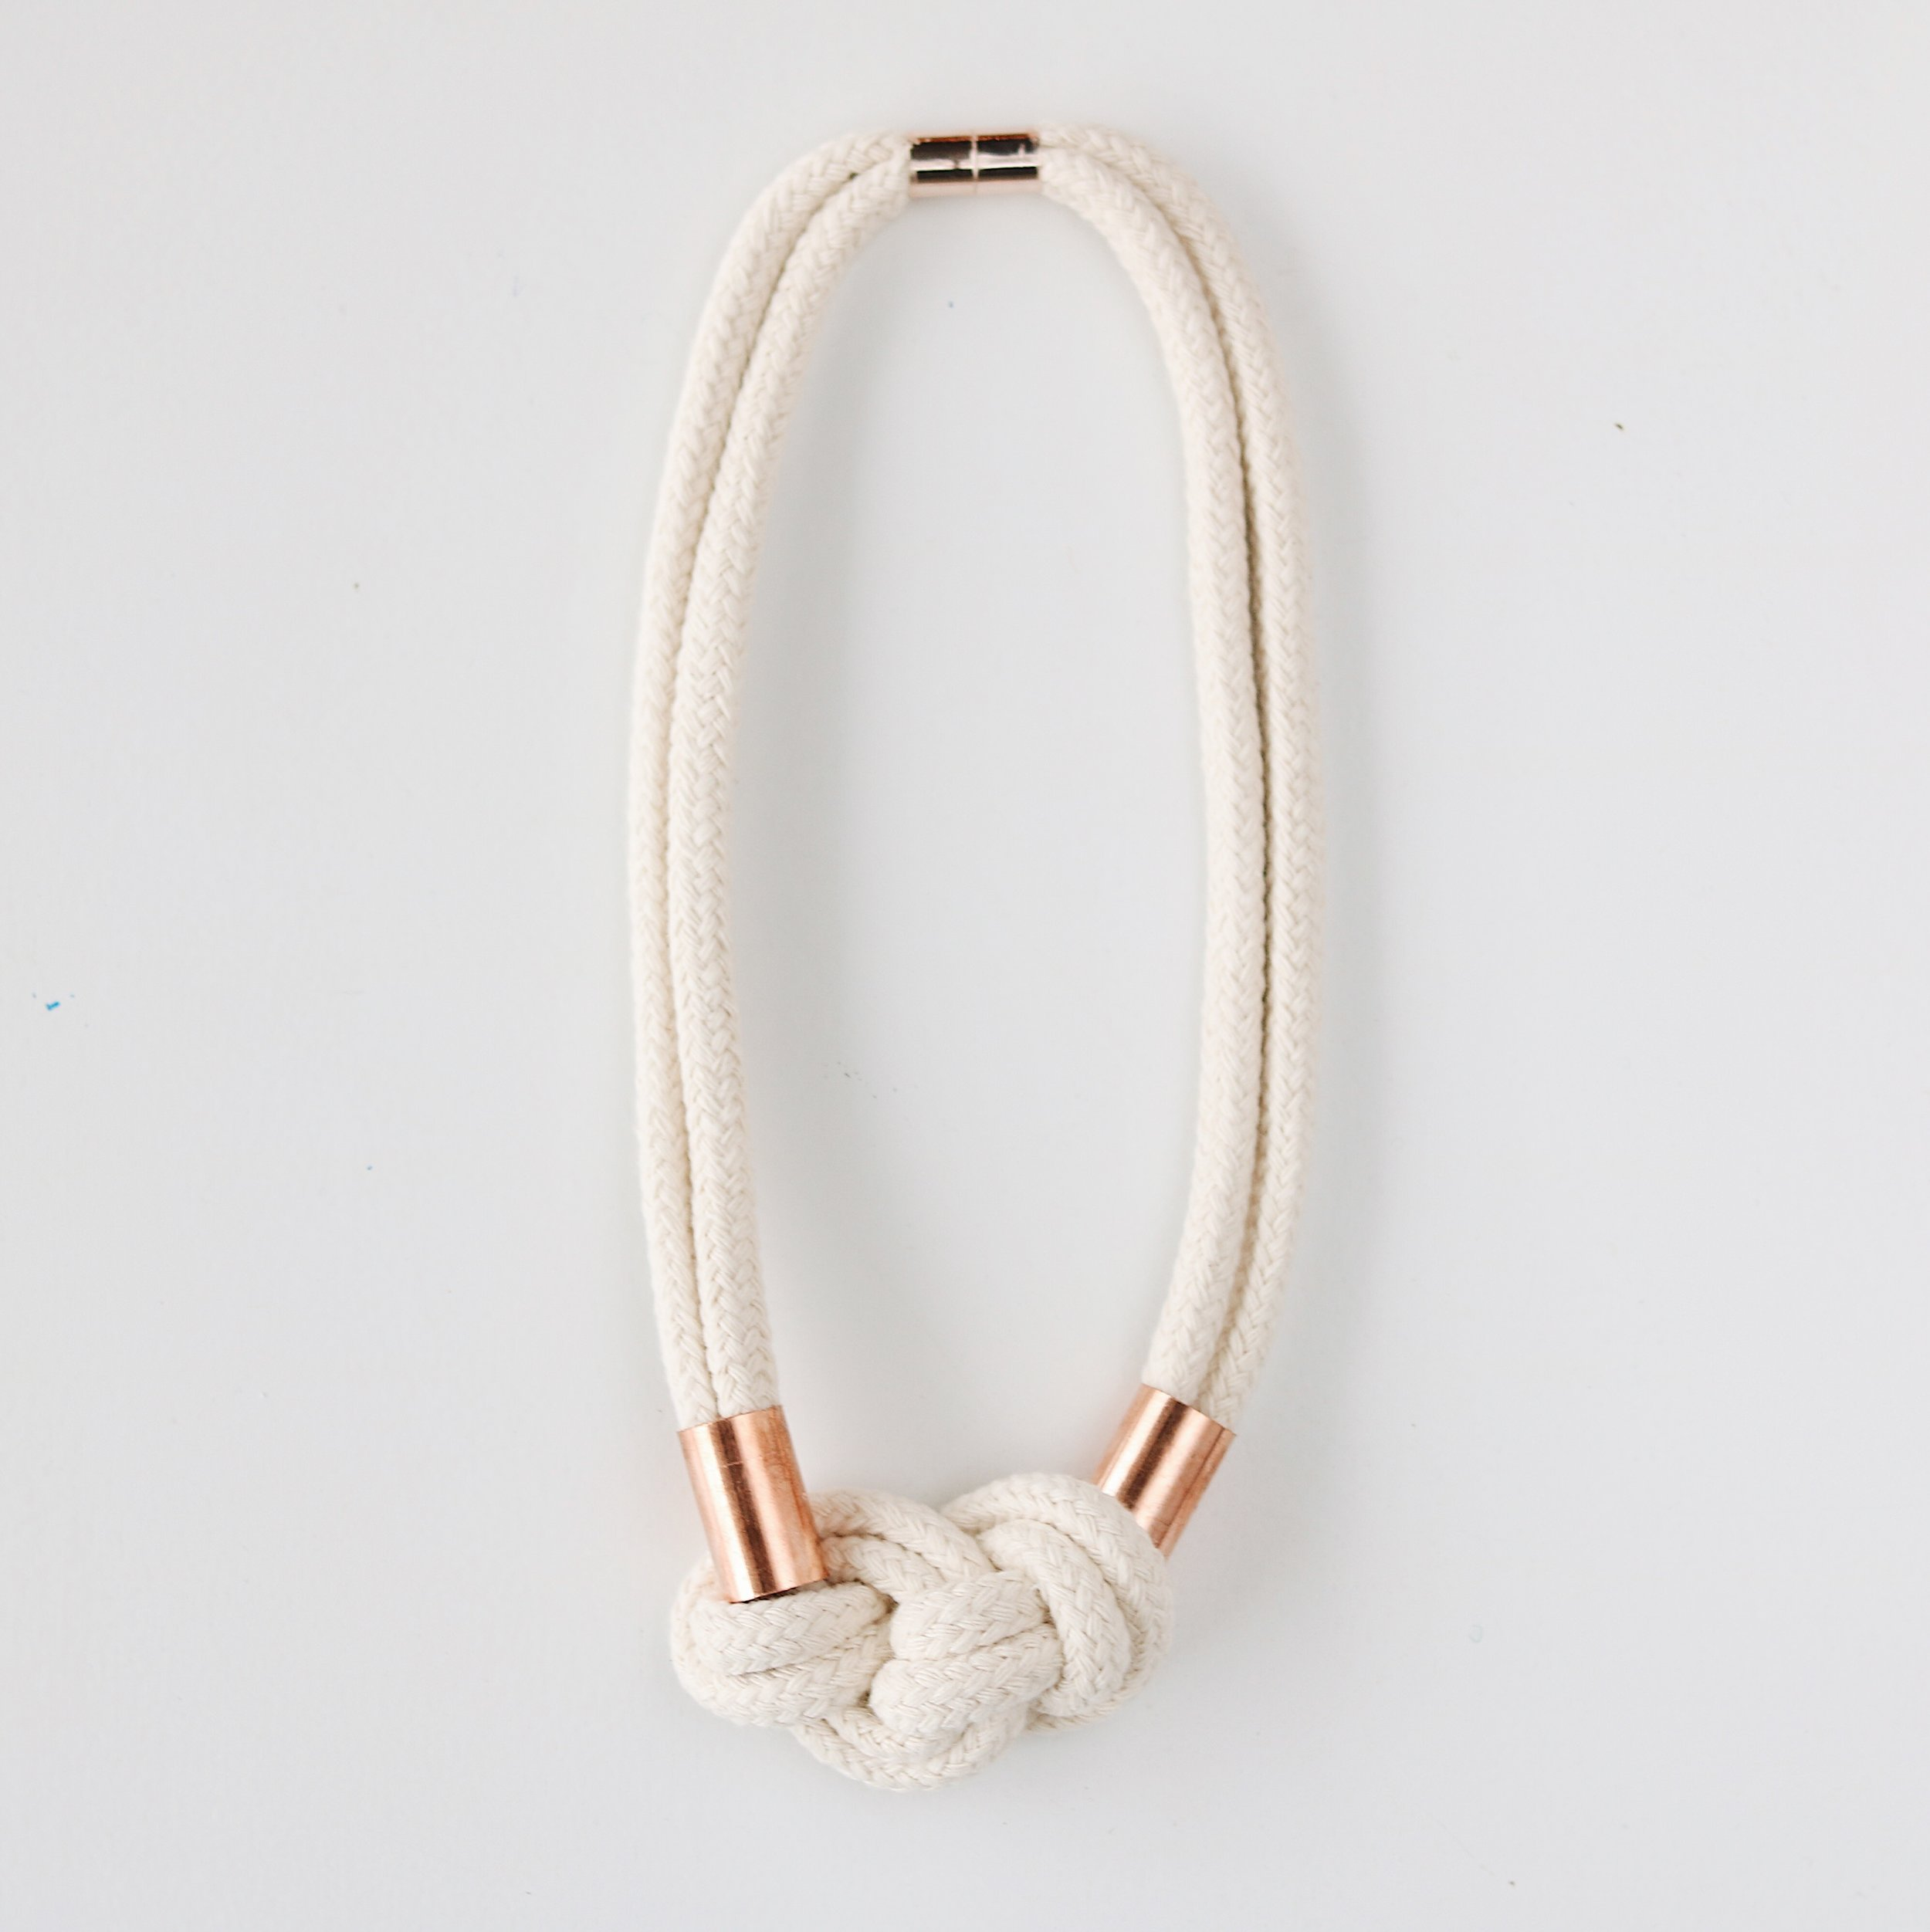 KNOTTY Necklace - $58